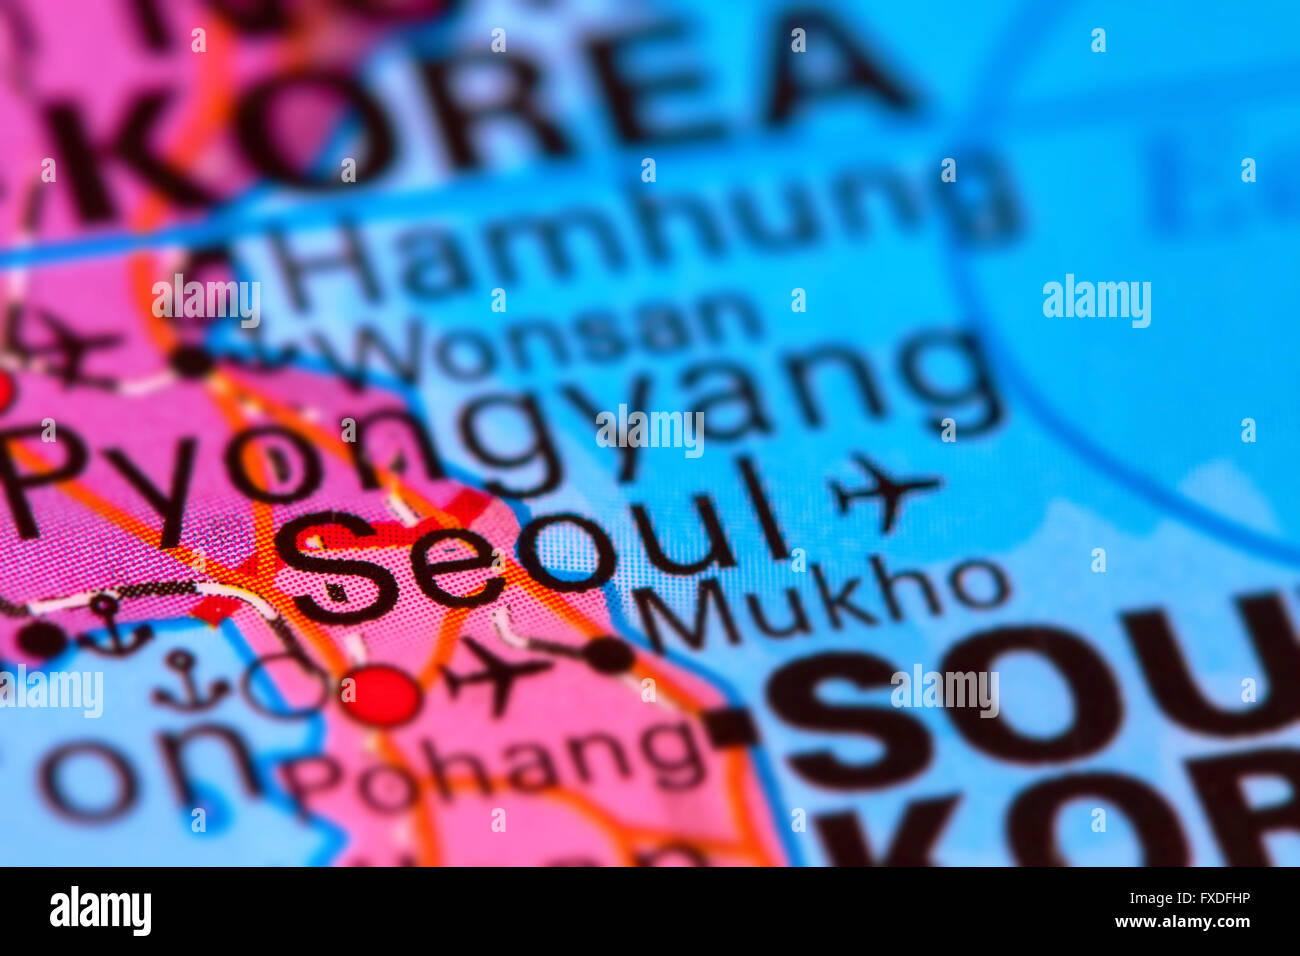 Seoul, Capital City of South Korea, Asian Country on the World Map ...